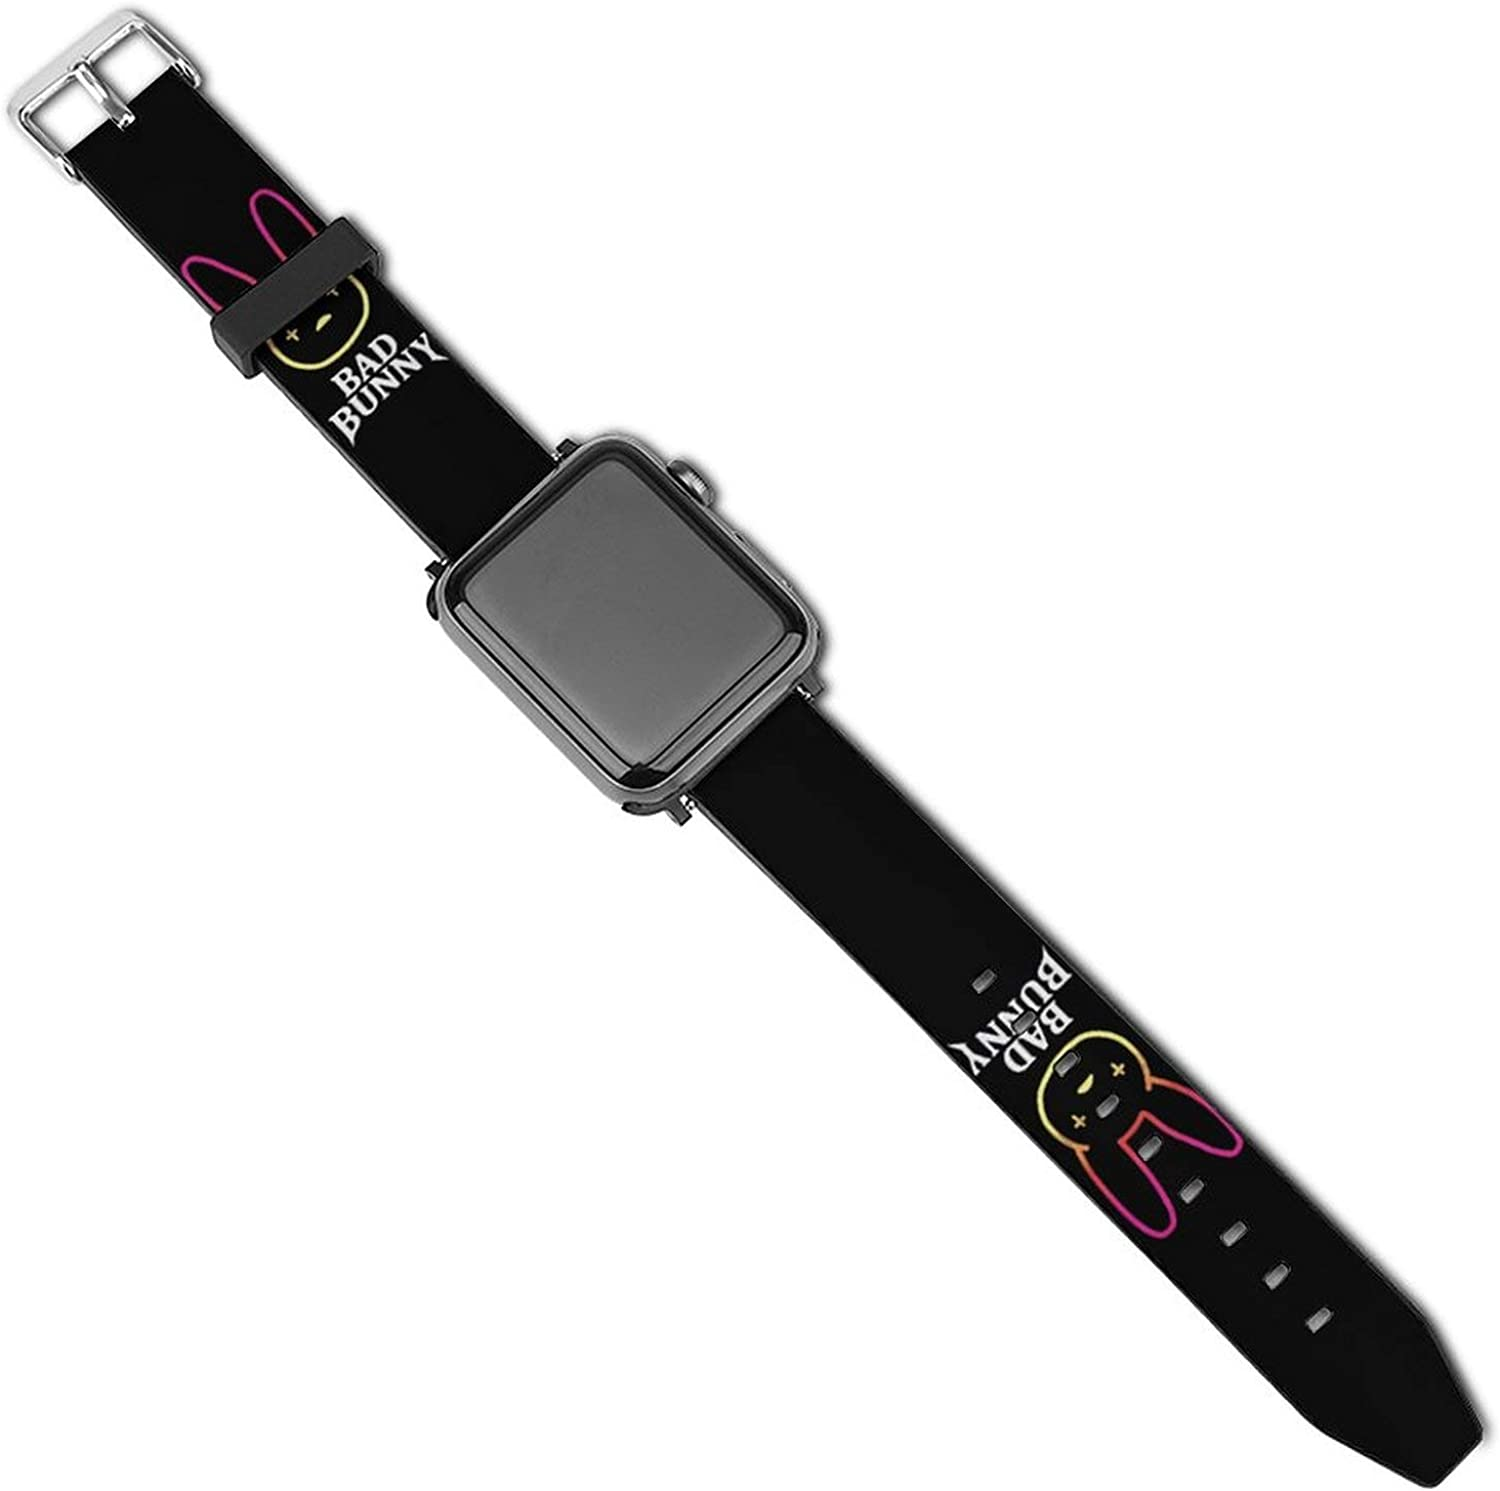 Bad Bun-ny Logo Patterned Leather Wristband Strap for Apple Watch Series 5/4/3/2/1